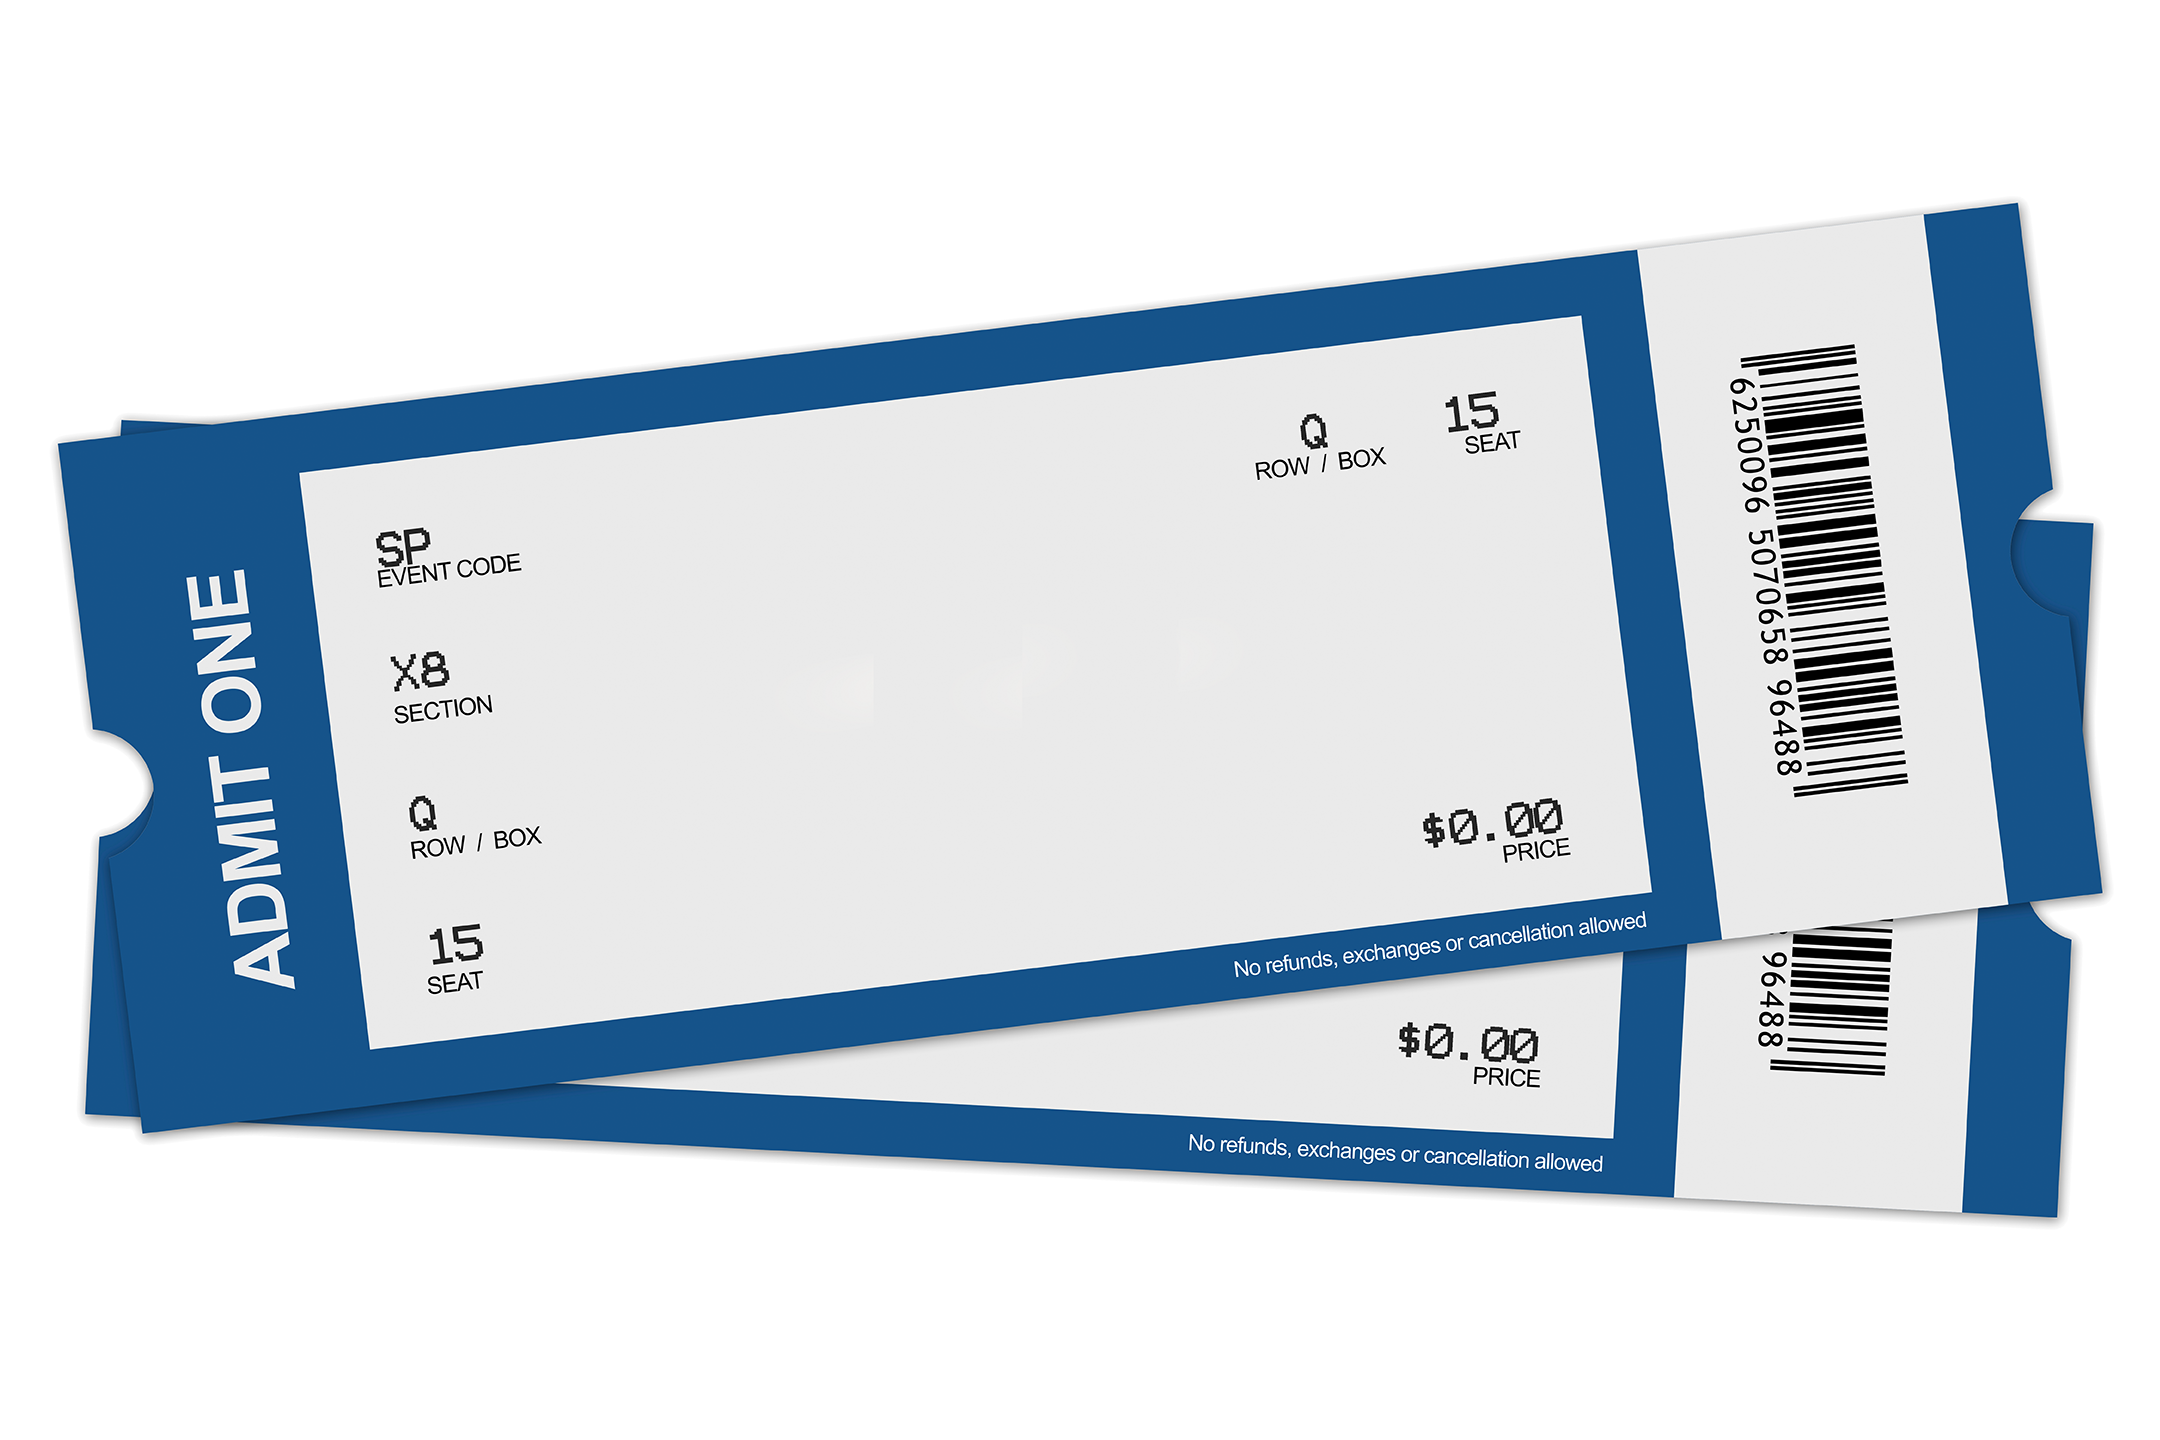 Blank ticket png Transparent pictures on F.